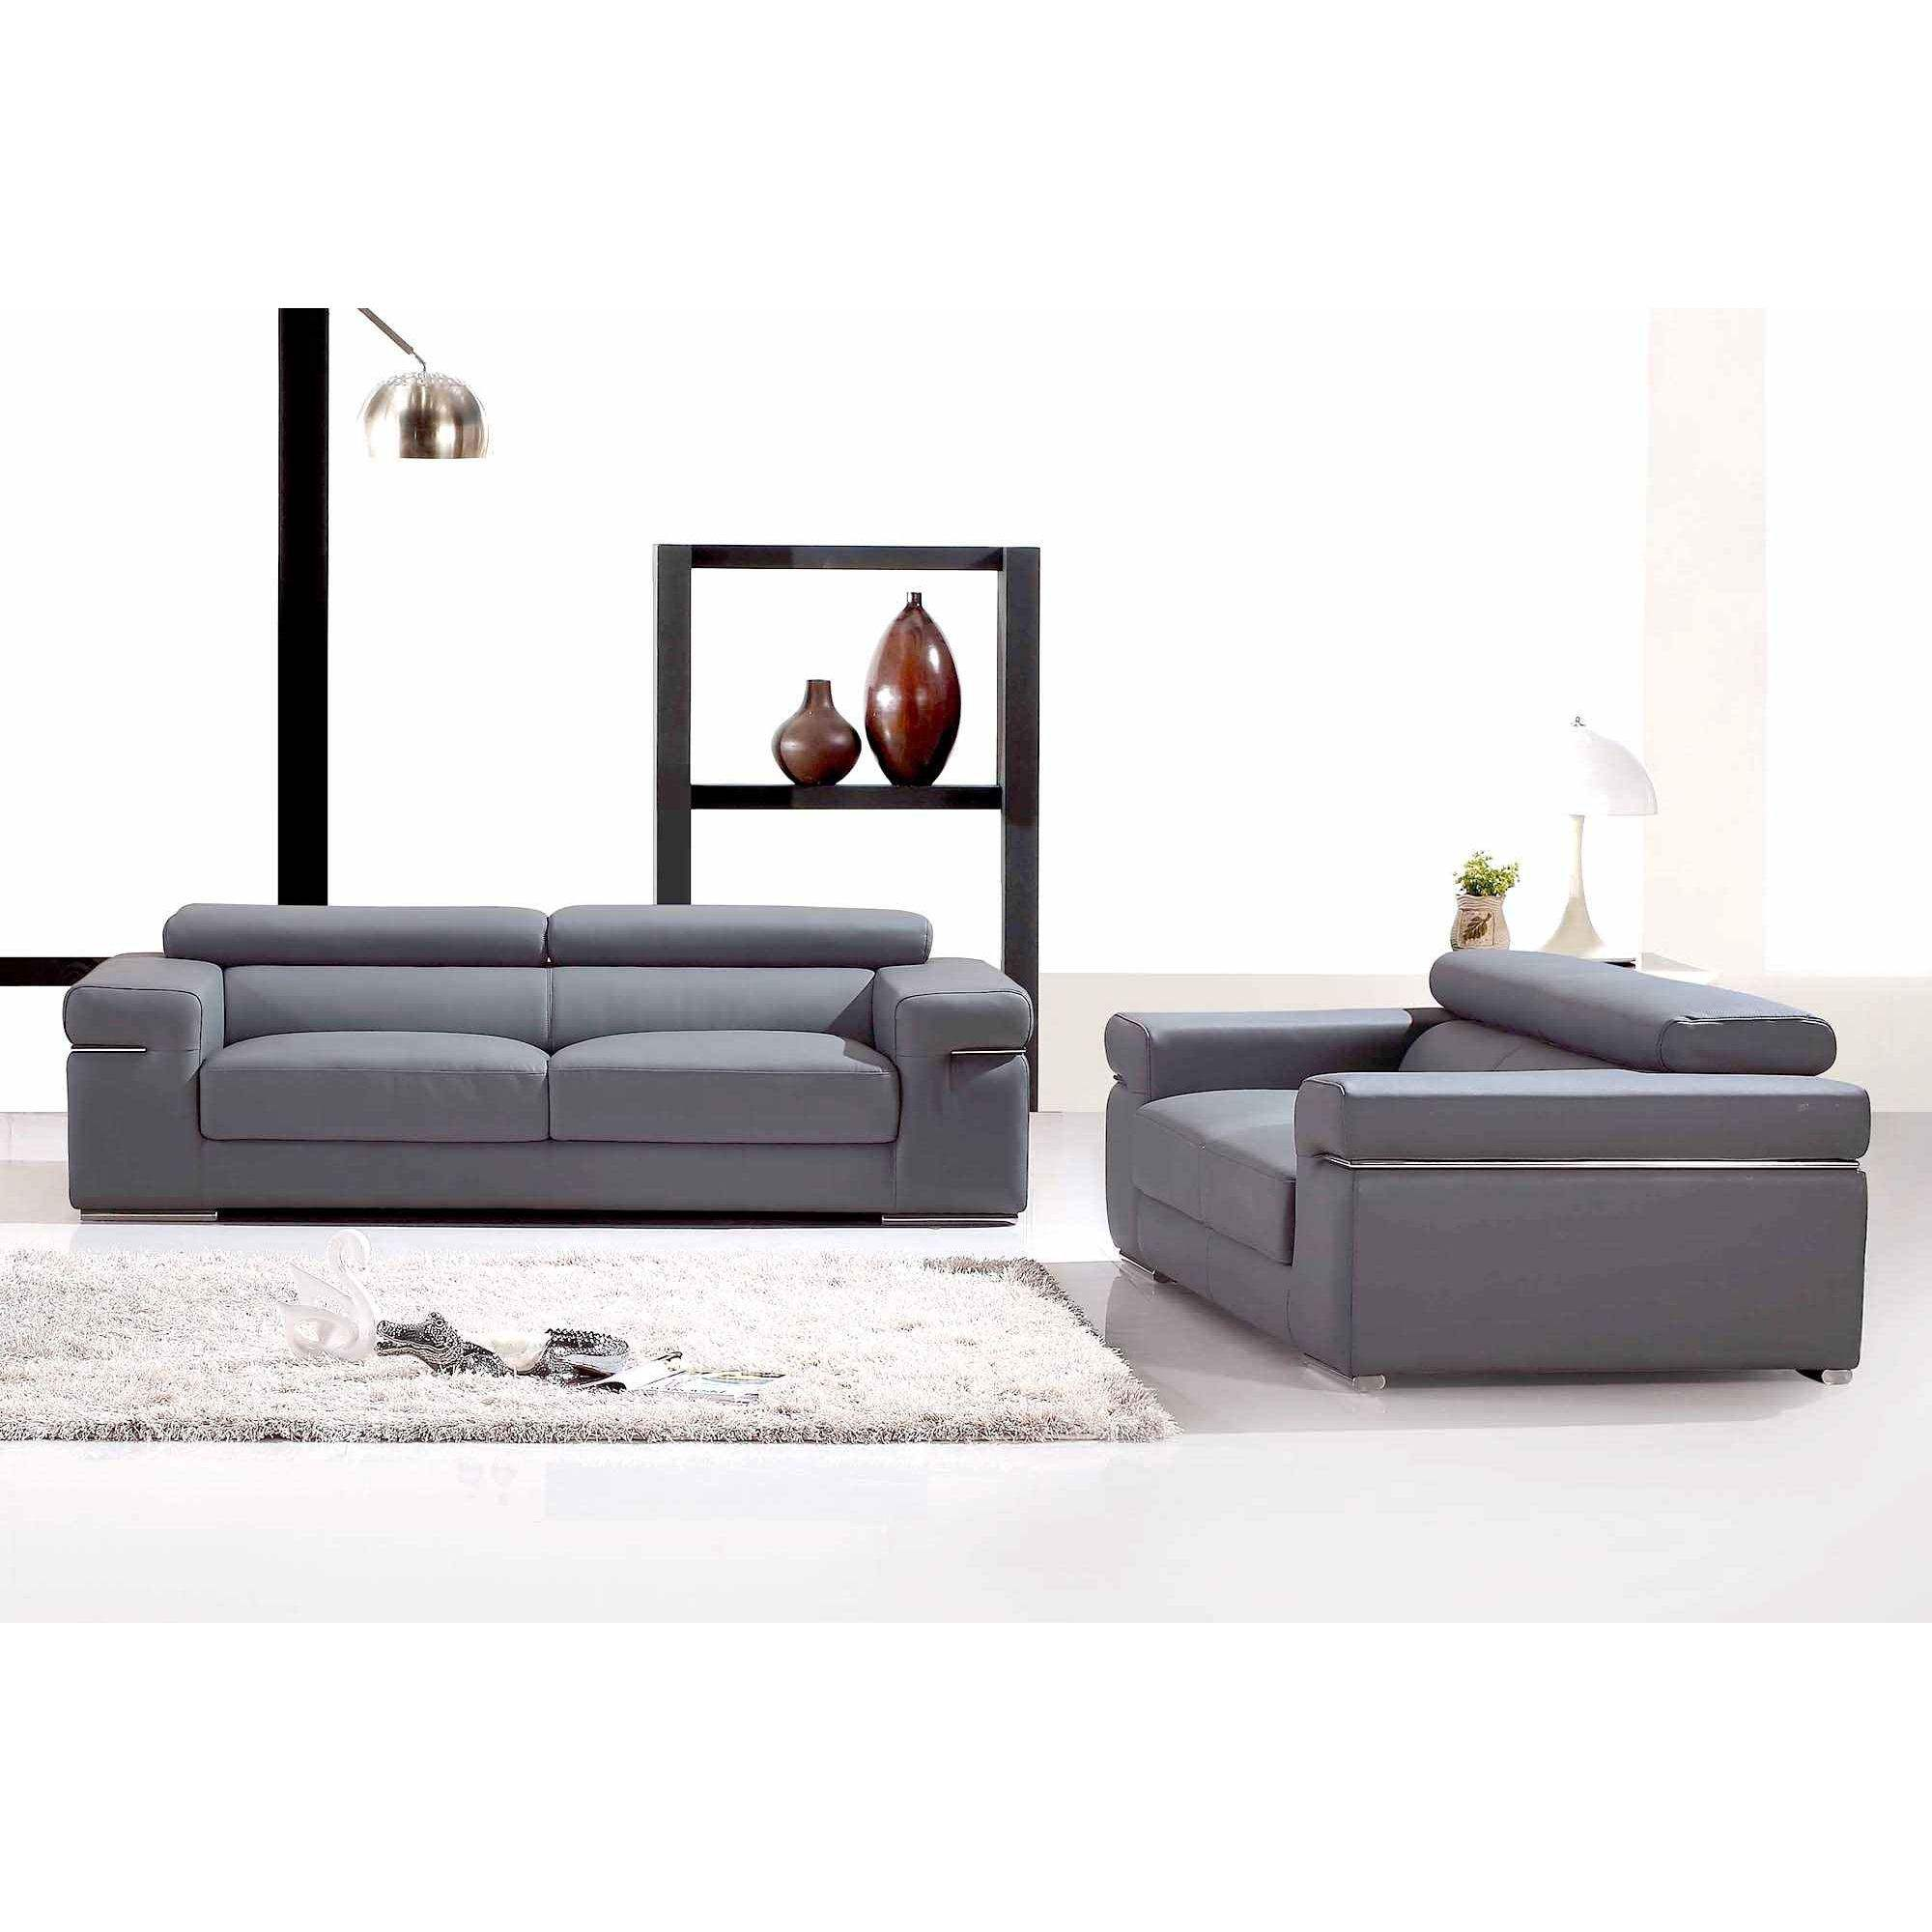 Deco in paris ensemble canape 3 2 places en cuir gris Canape 3 places gris